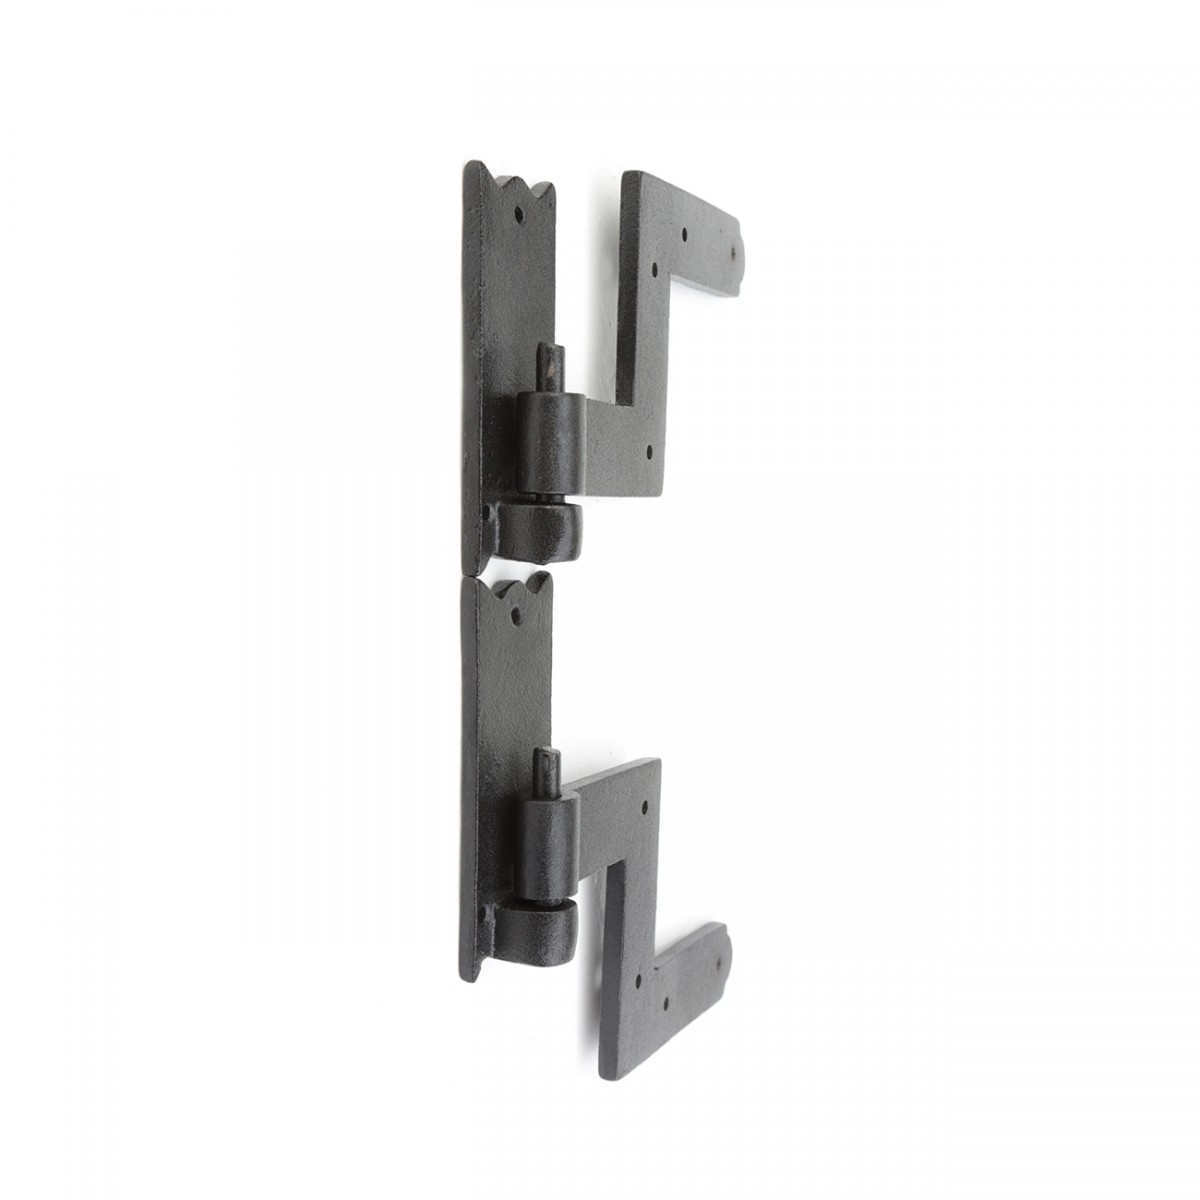 Black RSF Iron Shutter Hinges Rustproof Finish 2 Pairs Wrought Iron Shutter Hinges exterior shutter hinges shutter hardware